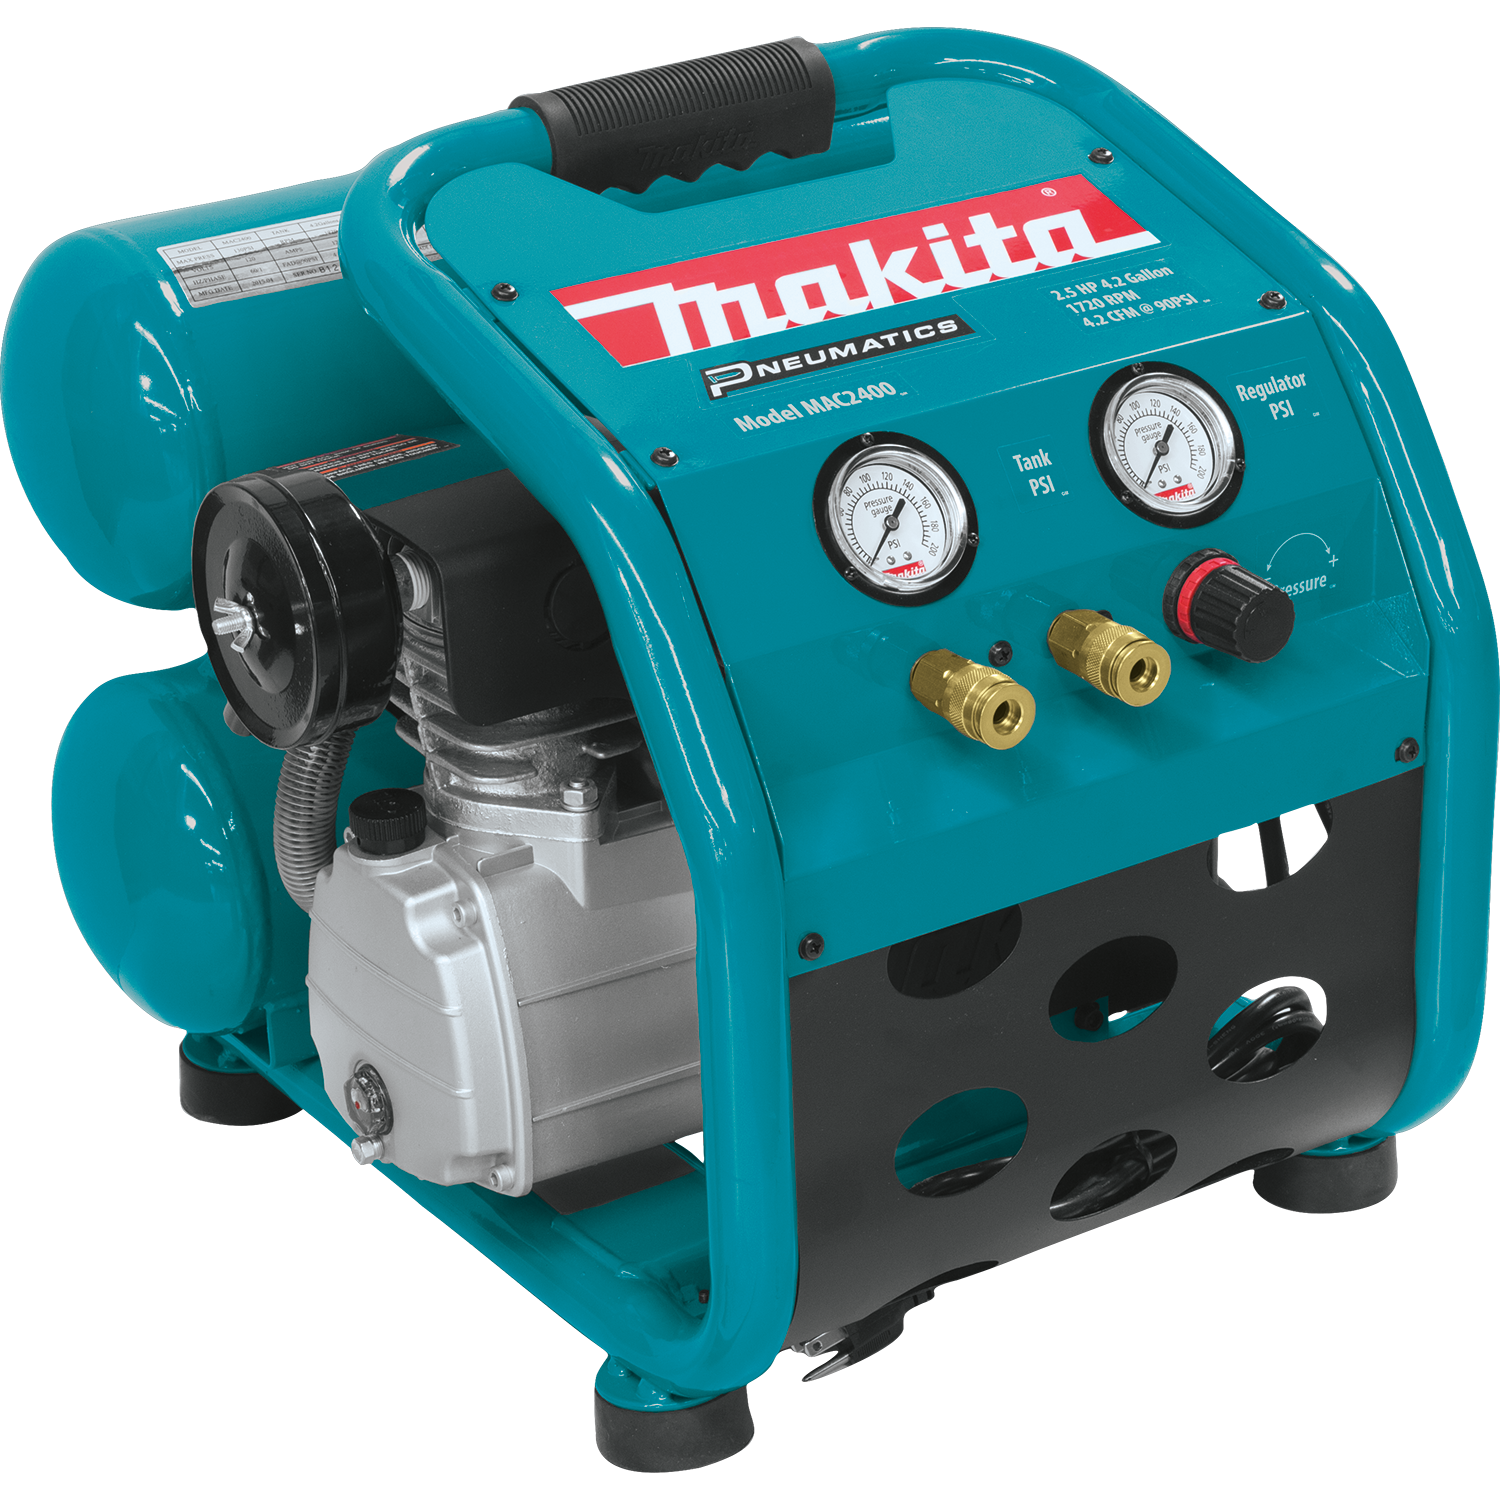 10 Best Portable Air Compressors In 2020 in 2020 Best